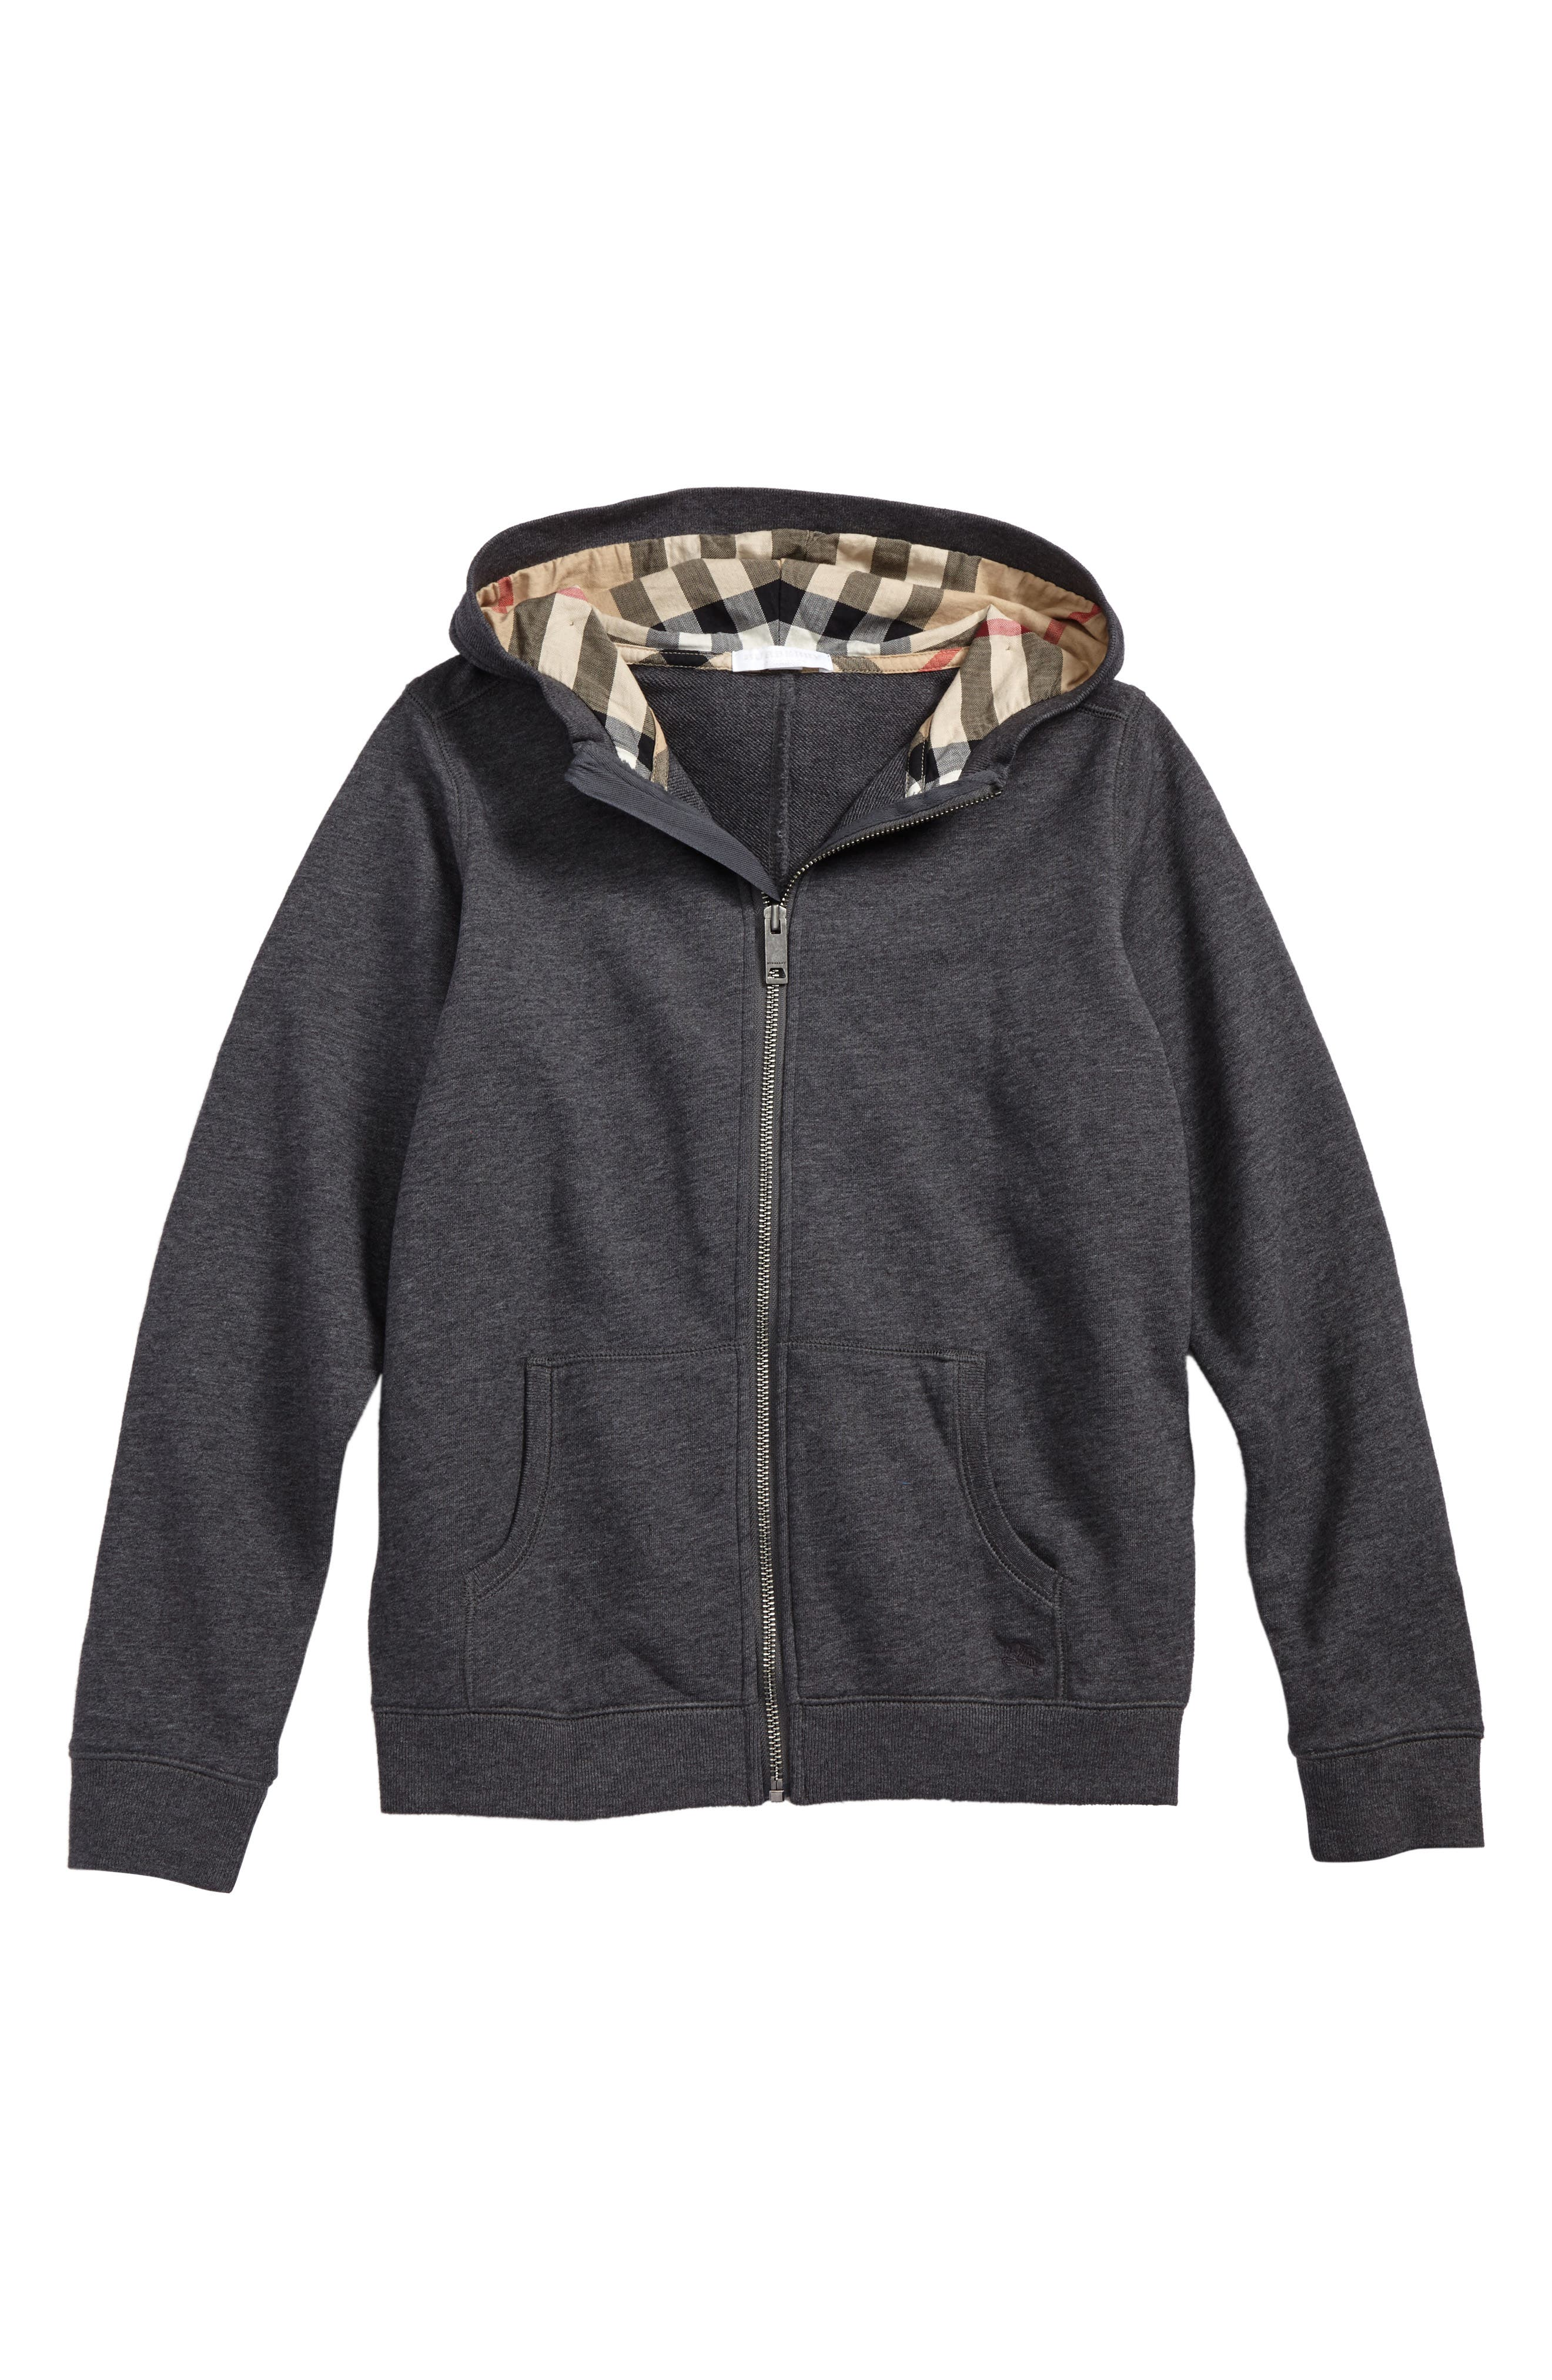 Alternate Image 1 Selected - Burberry Pearcy Hoodie (Little Boys & Big Boys)